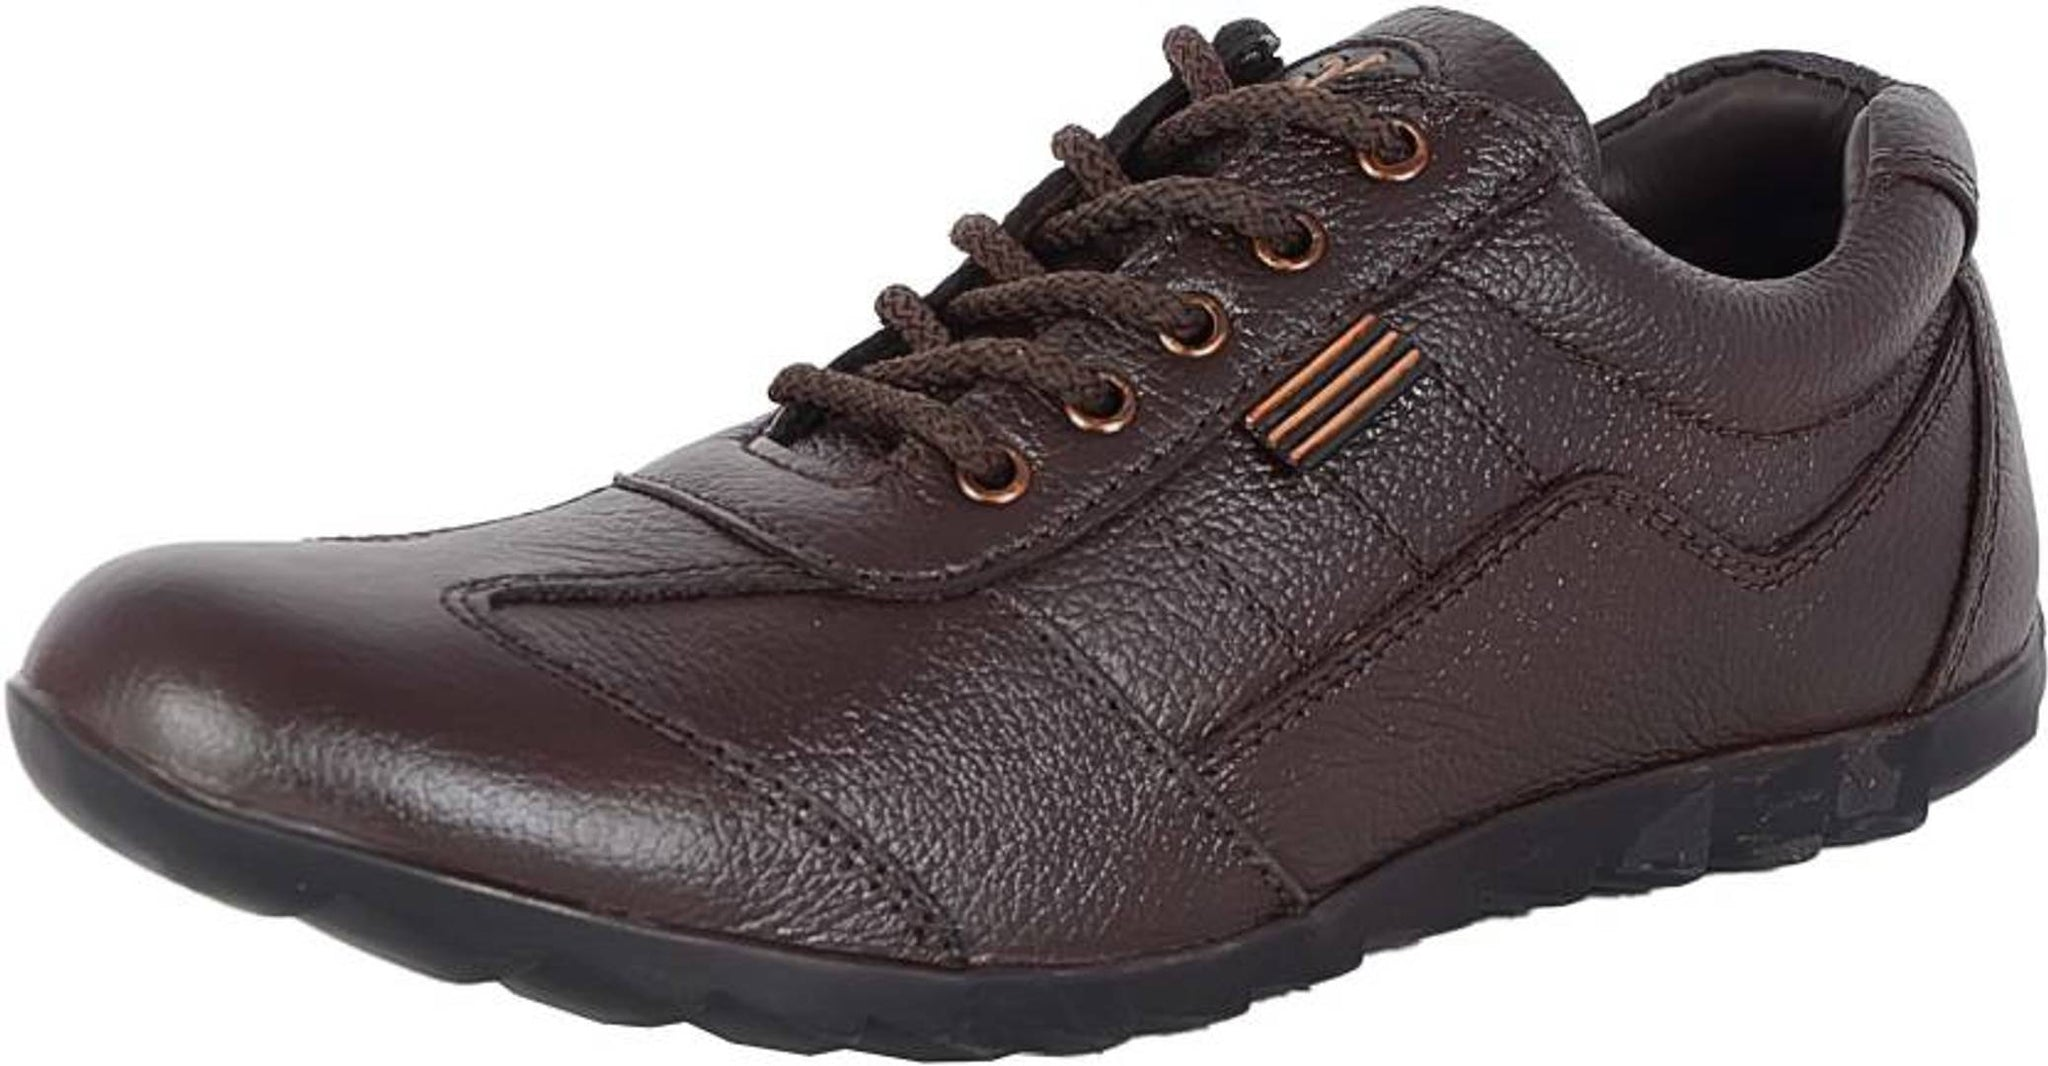 Stylish Men's Brown Leather Casual Shoes